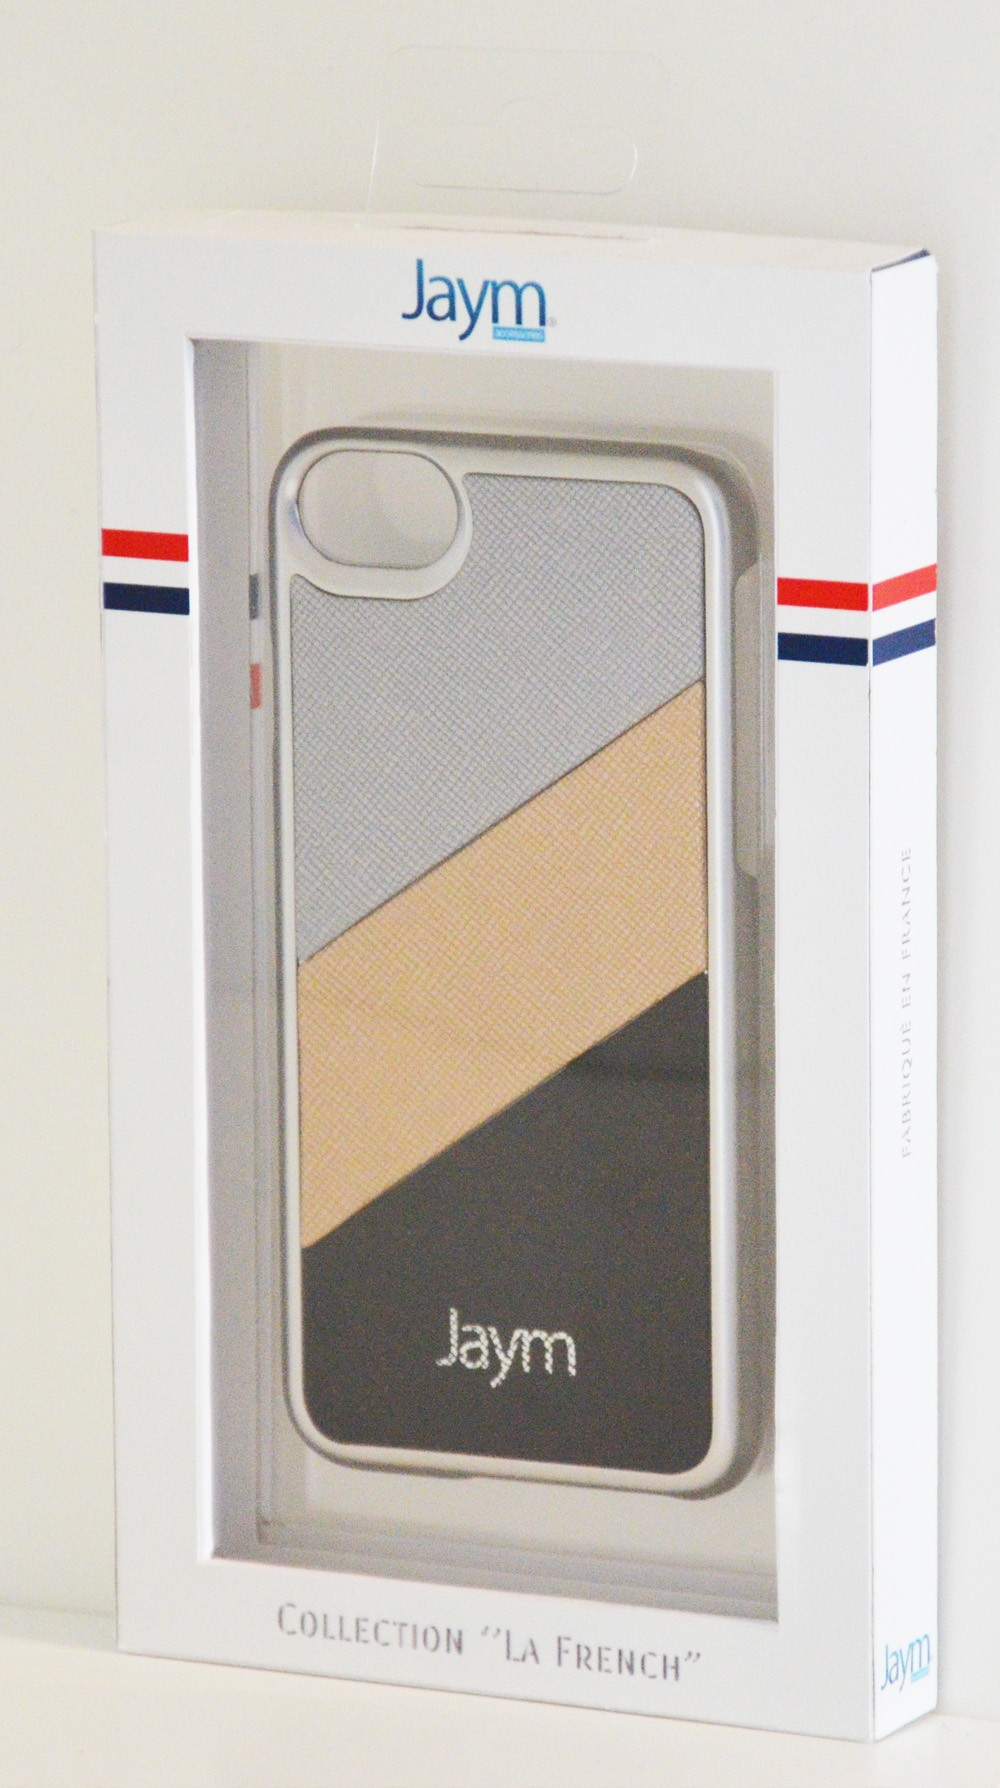 COQUE PREMIUM MADE IN FRANCE COMPATIBLE APPLE IPHONE X / XS JAYM - SILVER ARGENT METAL